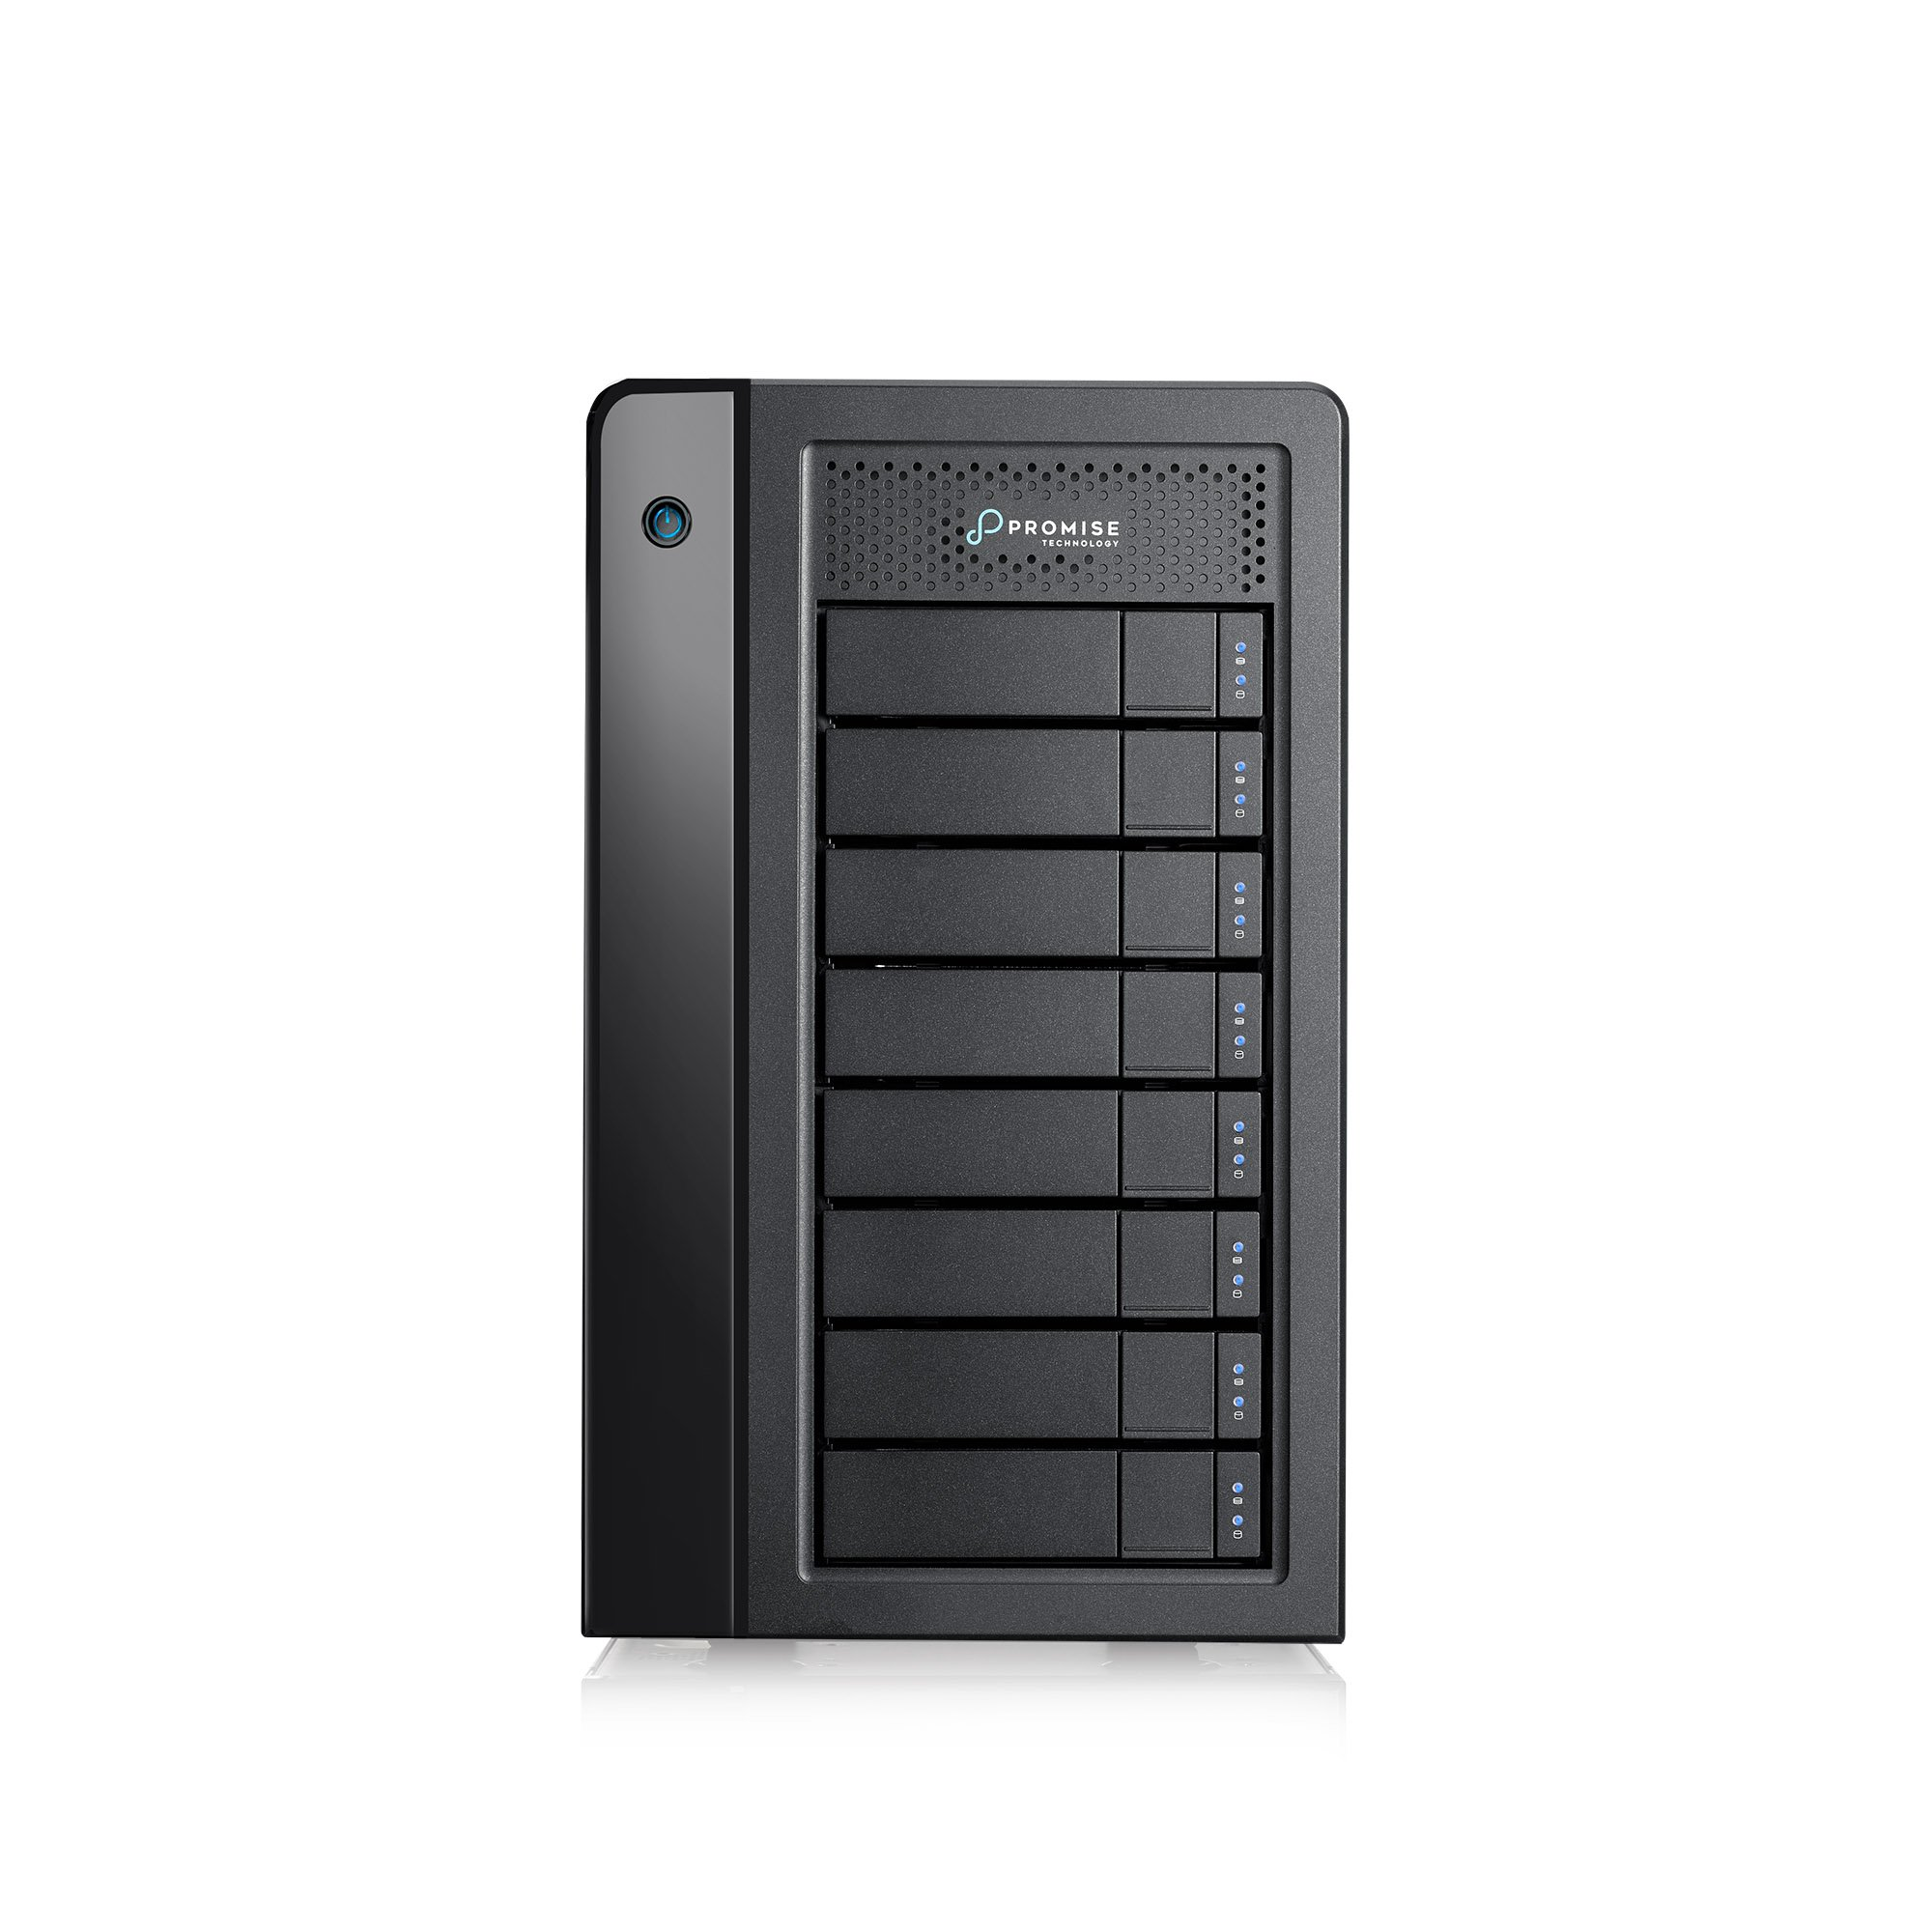 Promise P3R8HD64US Pegasus 64TB Thunderbolt 3 RAID Storage, External Hard Drive by Promise Technology